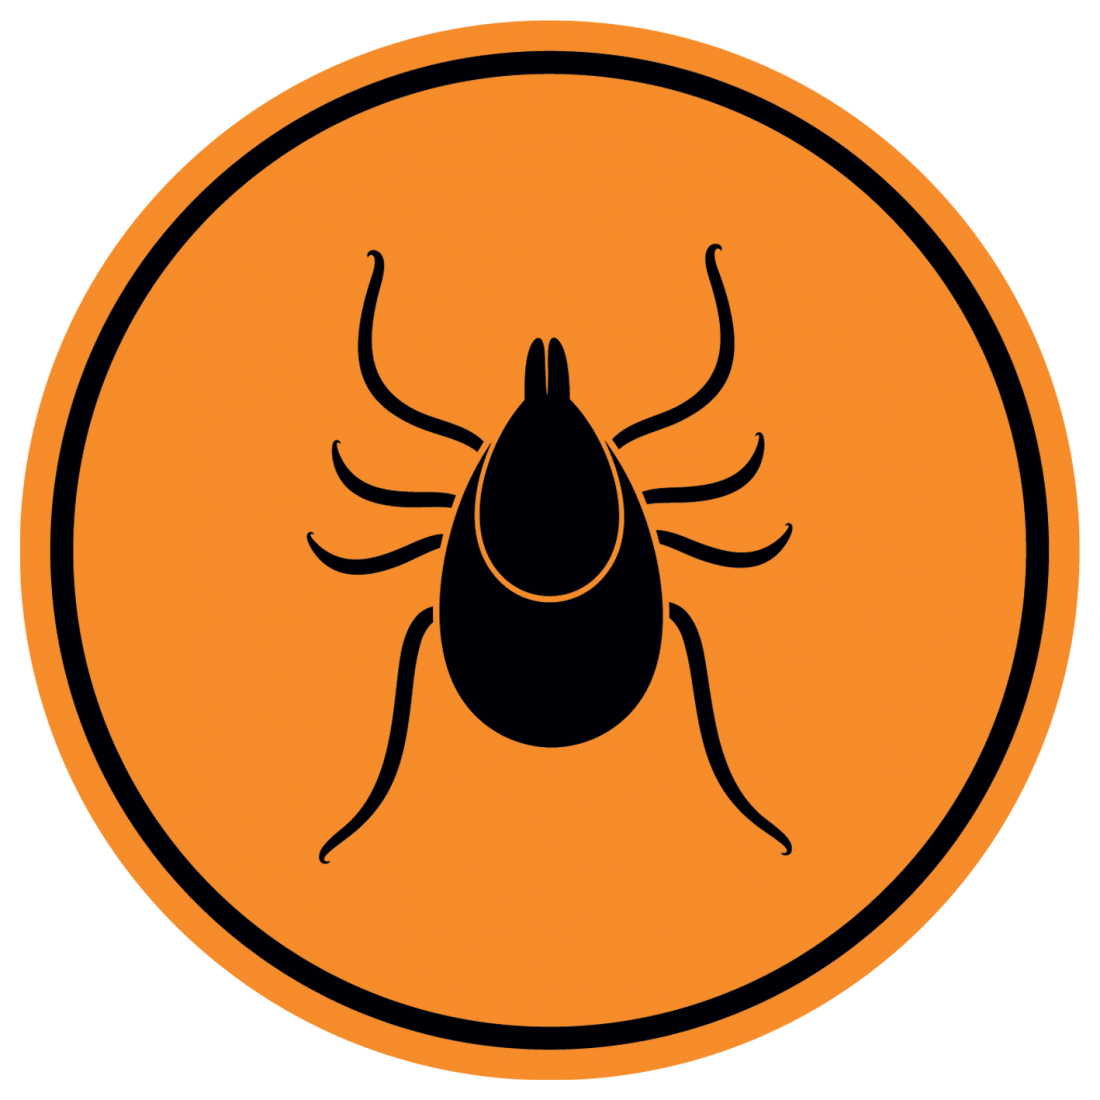 tick danger sign